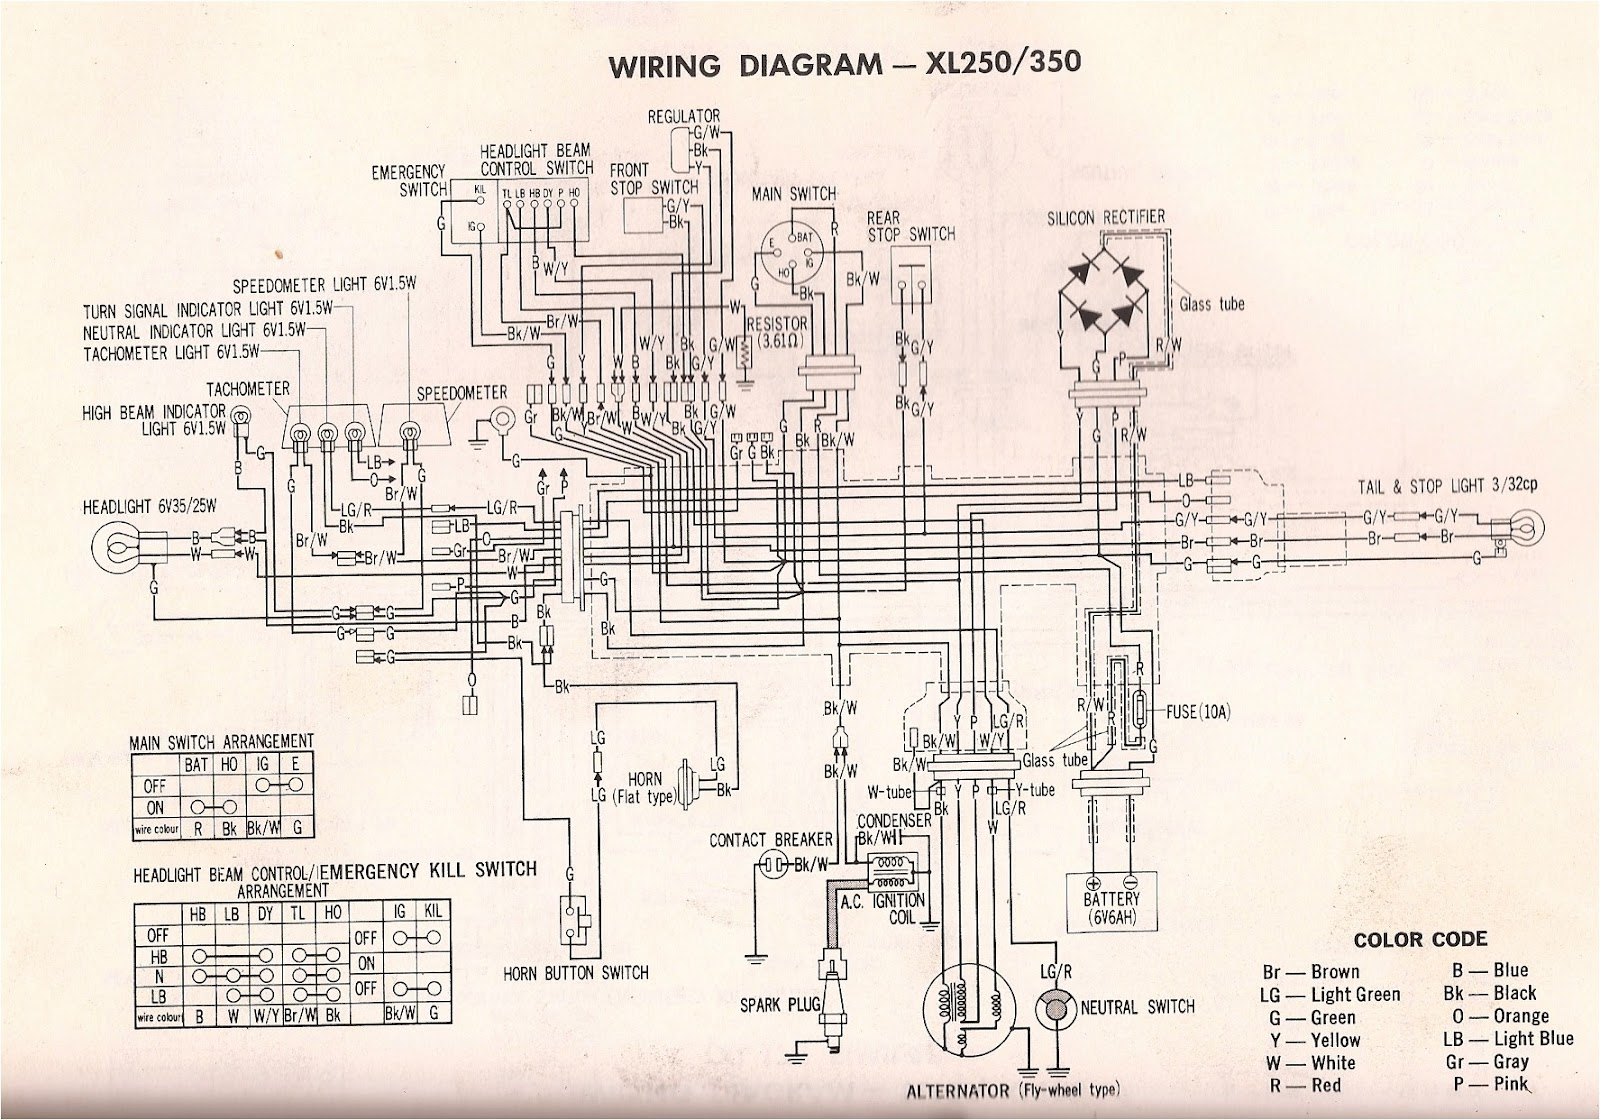 1974 Honda Xl 125 Wiring Diagram Smart Diagrams 125cc 250 Auto Electrical U2022 Rh 6weeks Co Uk Trx 300